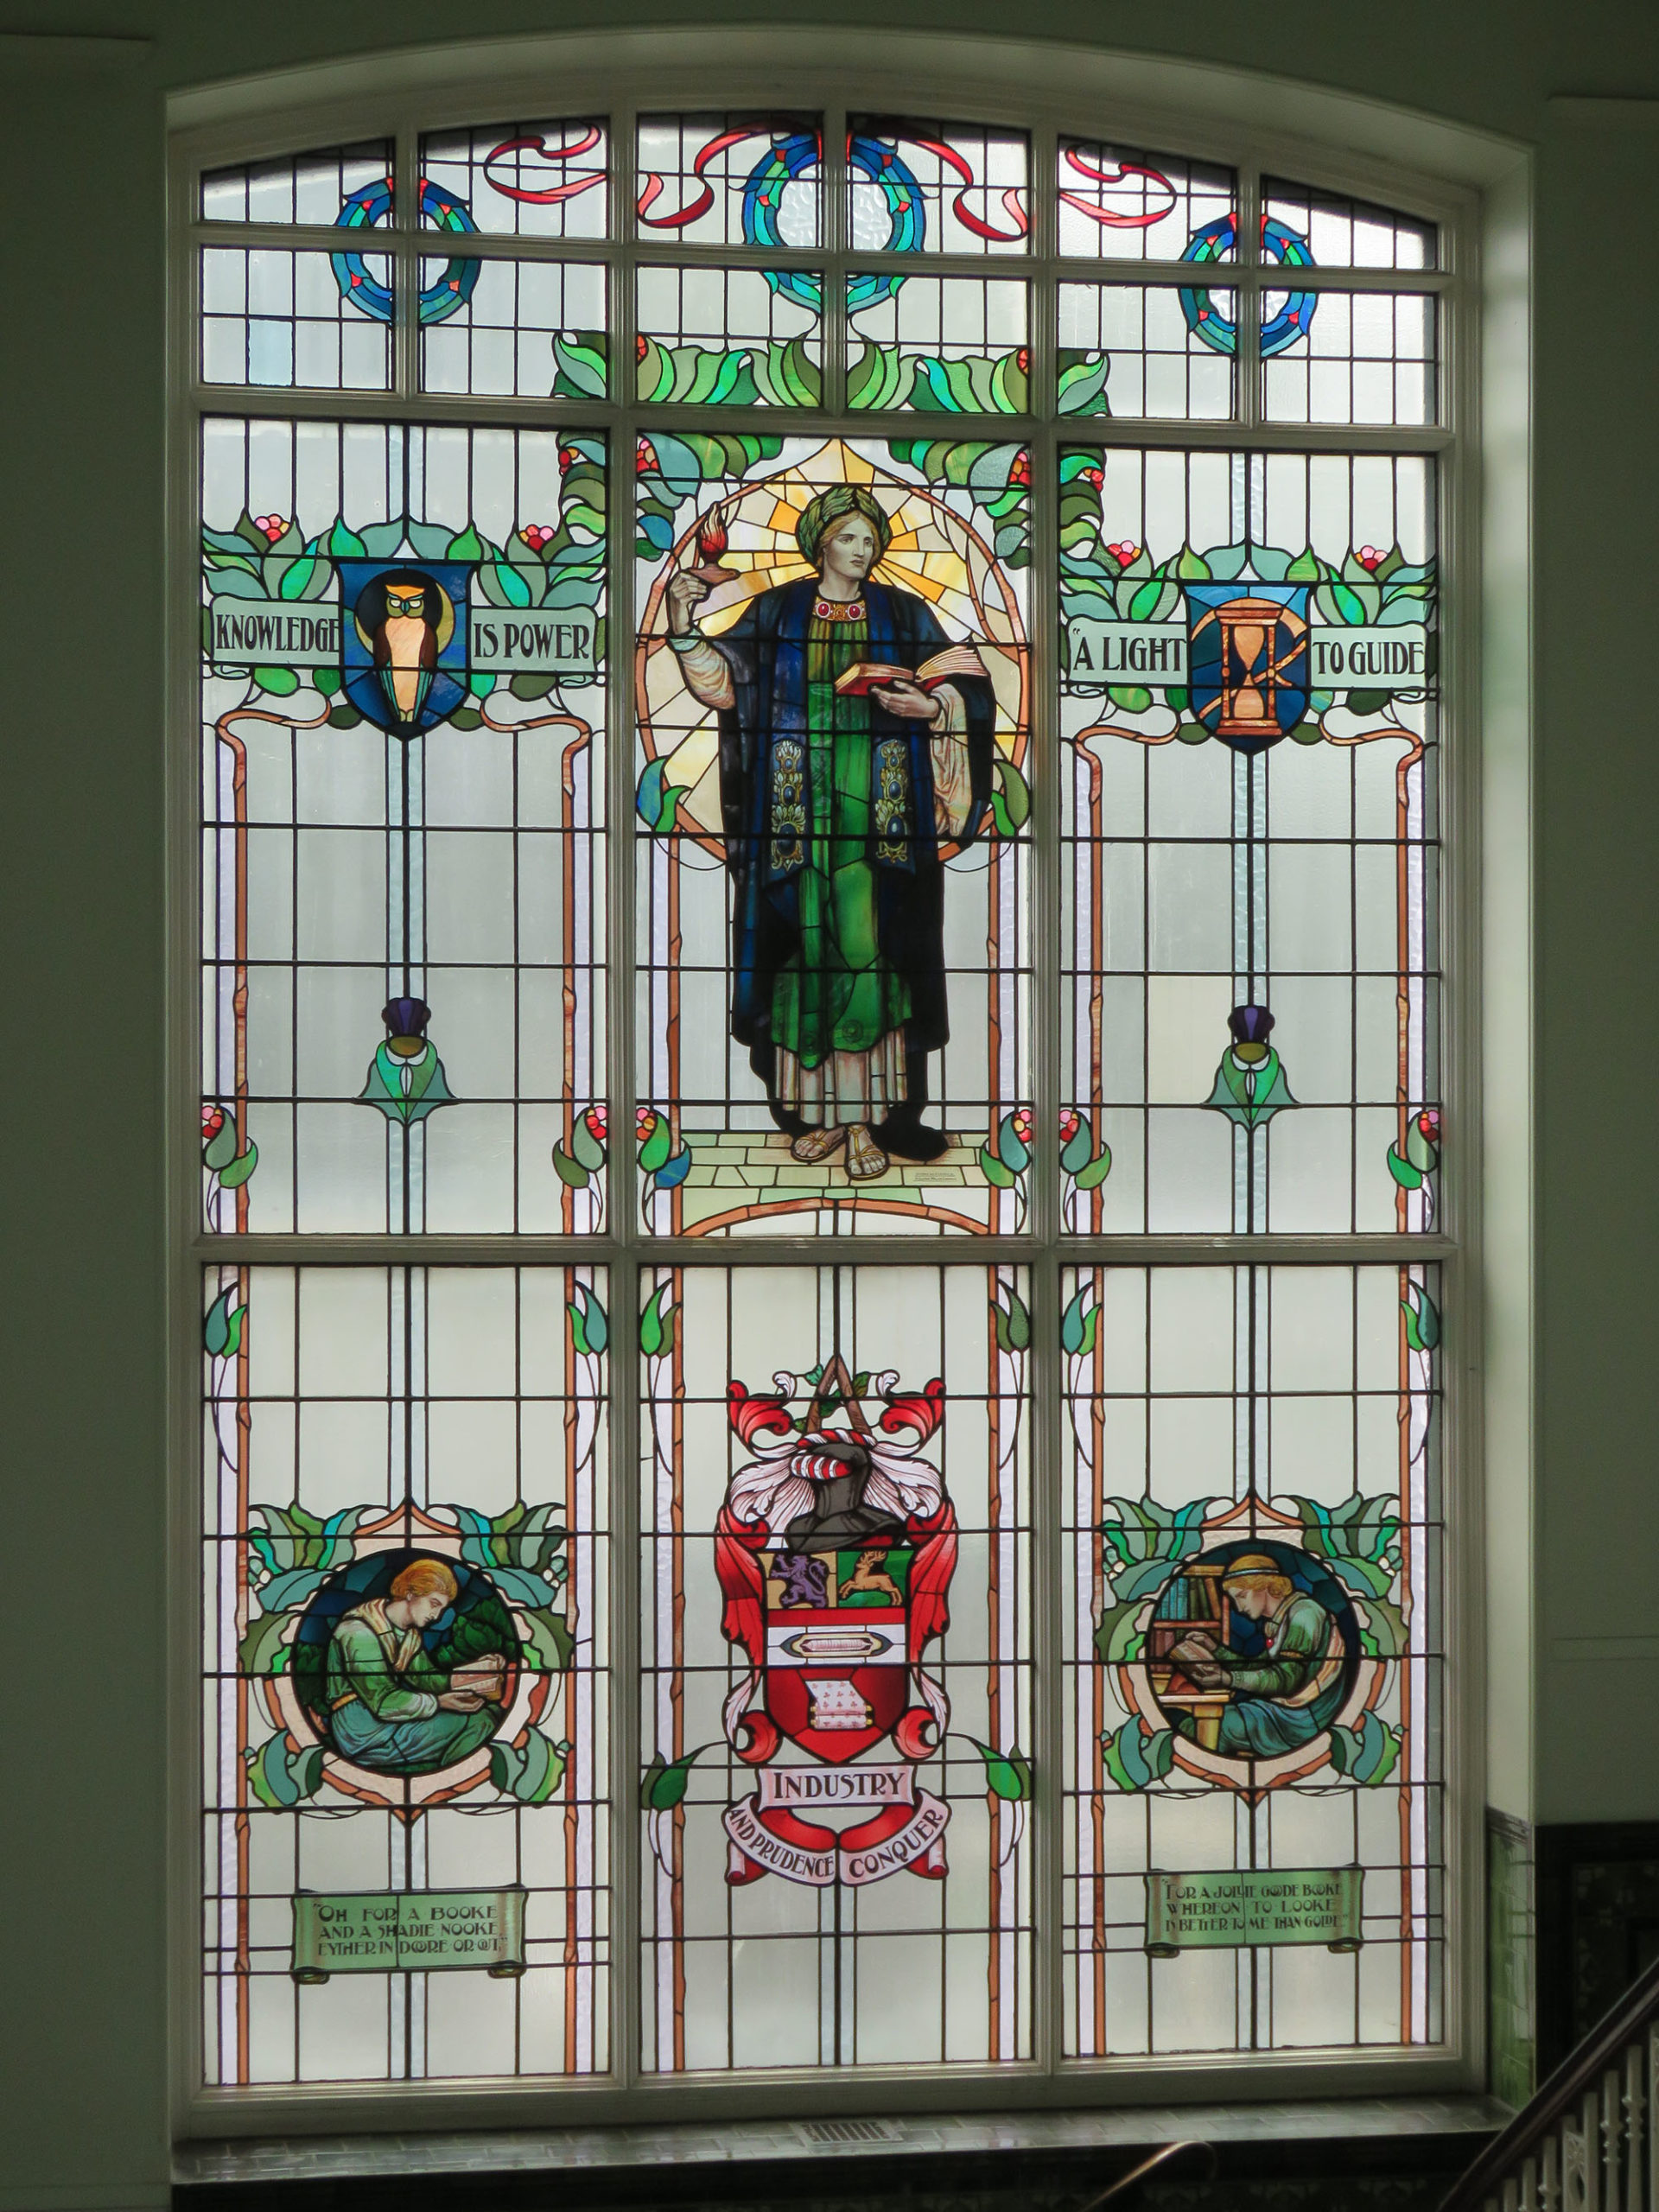 5.-ACCRINGTON-LIBRARY-WINDOW-DESIGNED-BY-HENRY-GUSTAVE-HILLER.-PHOTO-CREDIT-LANCASHIRE-COUNTY-LIBRARIES